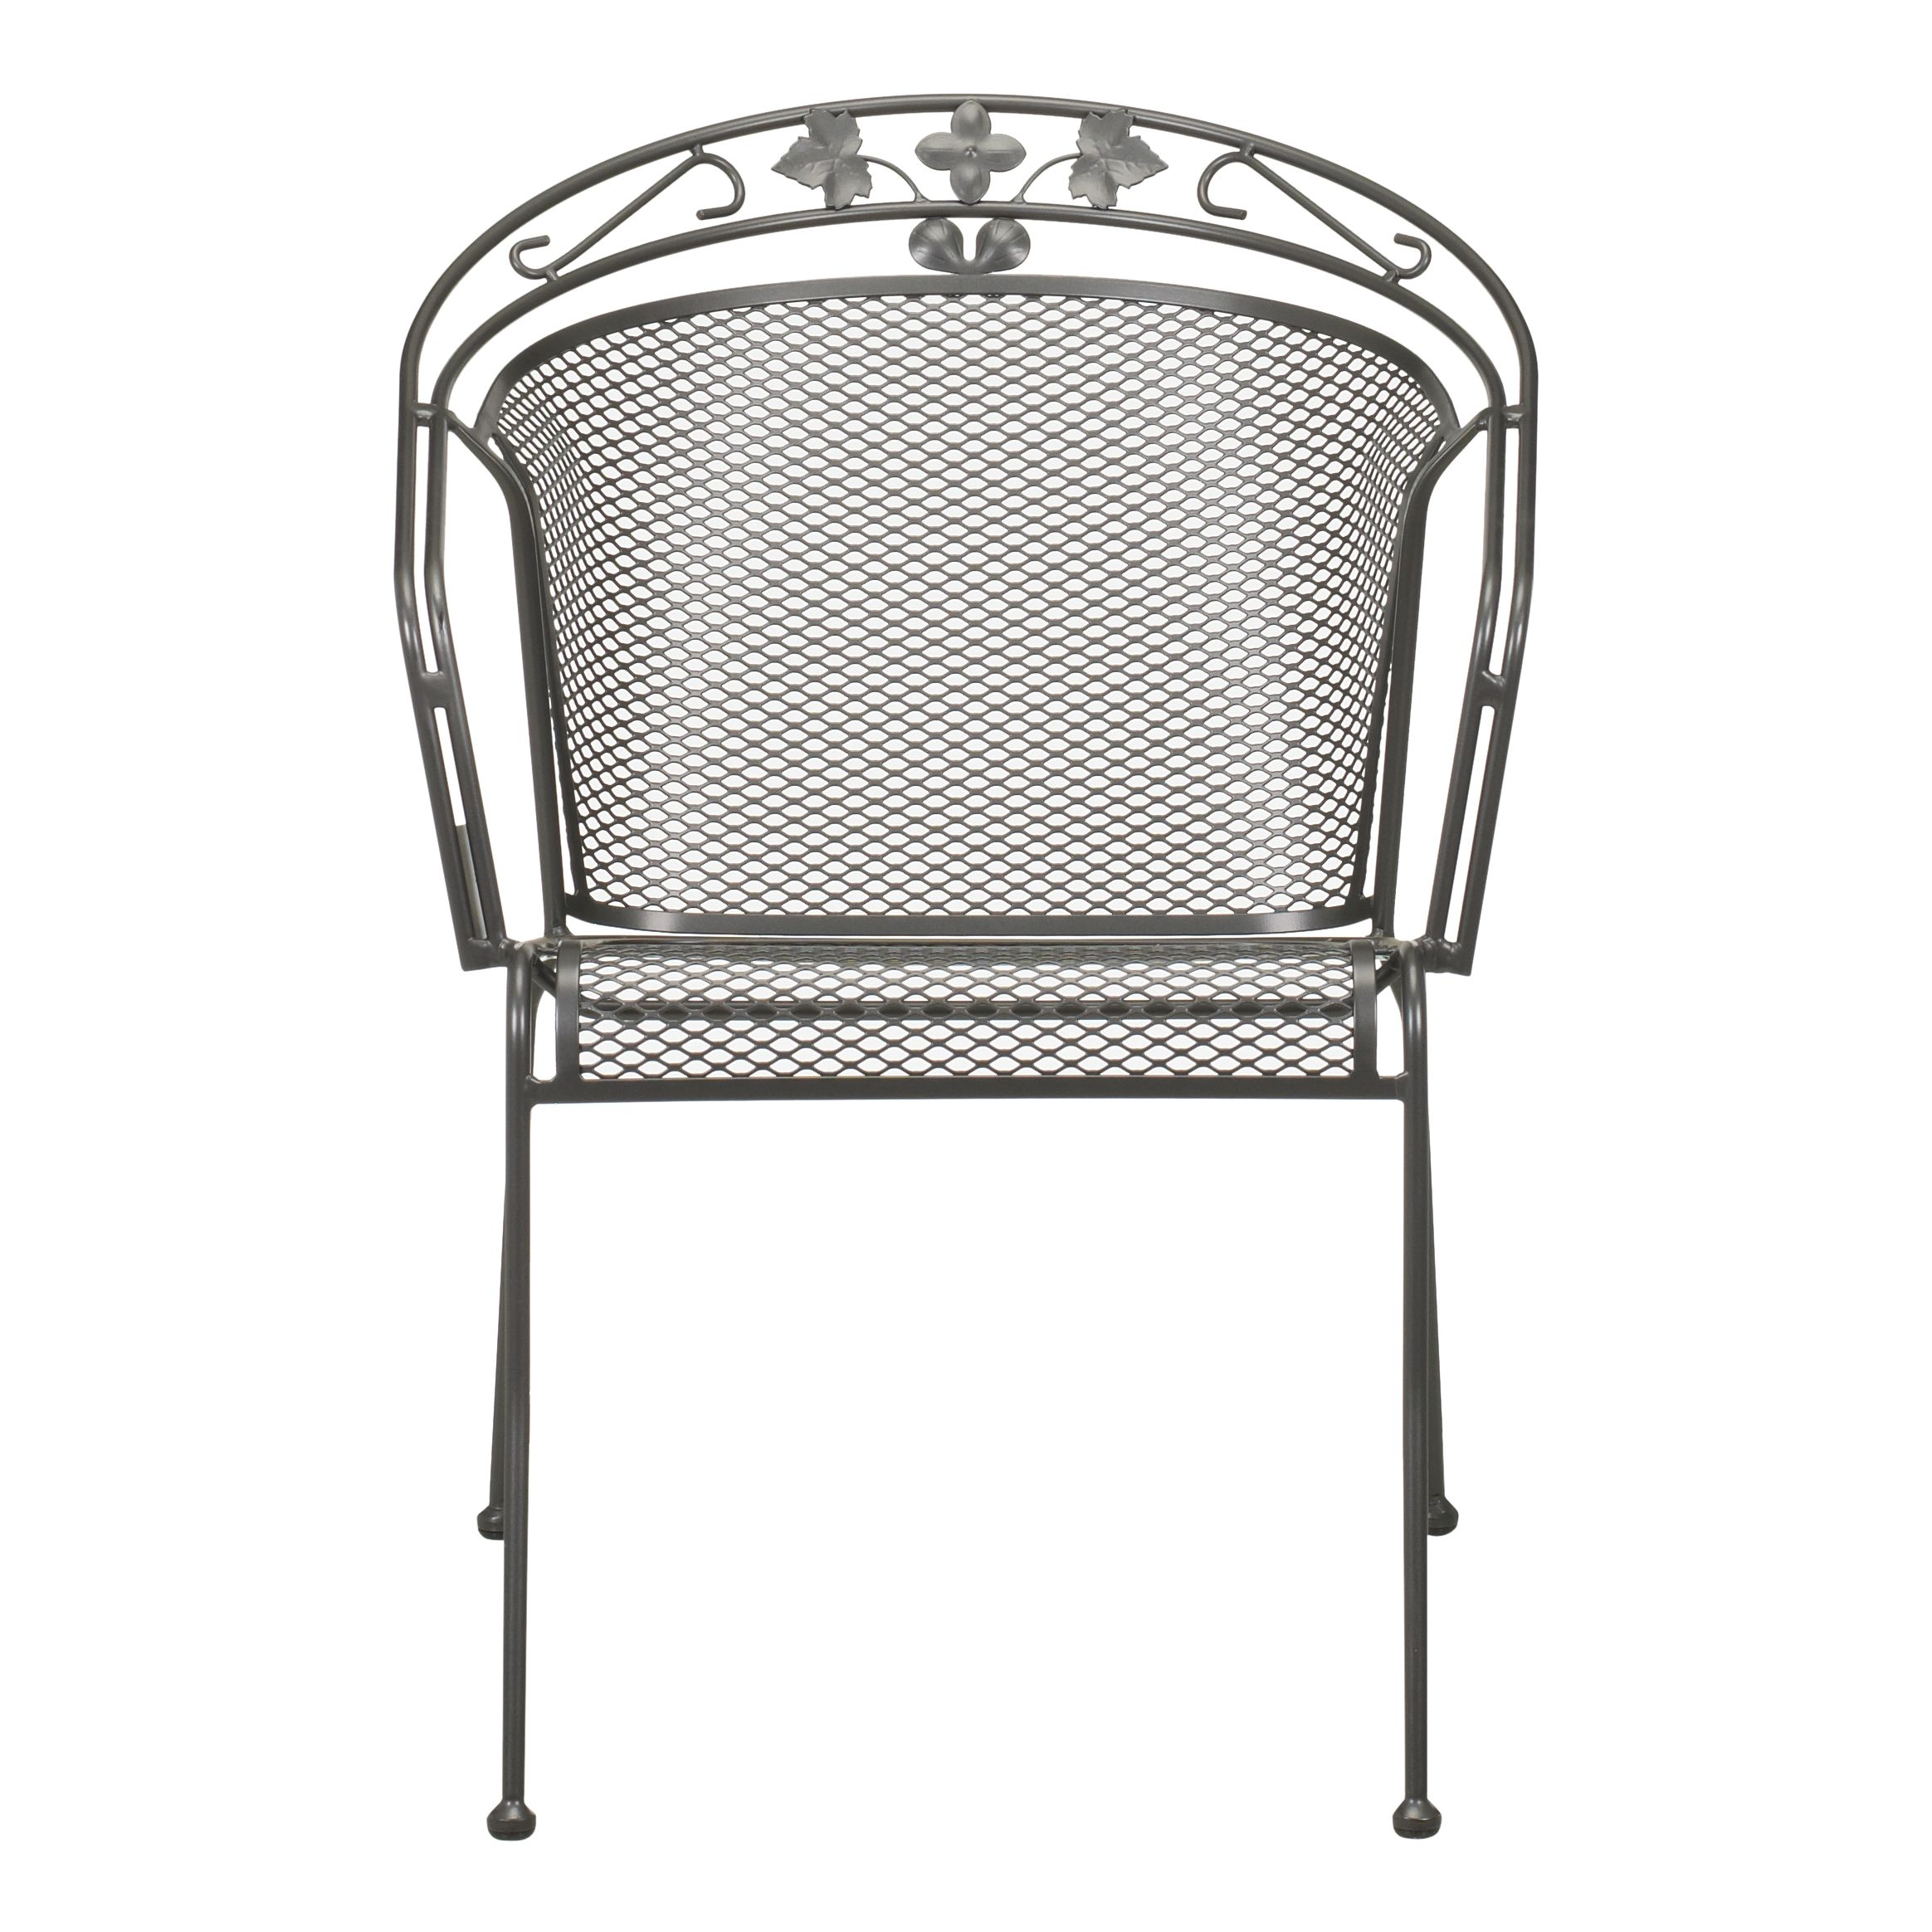 Royal Garden Elegance Outdoor Chair